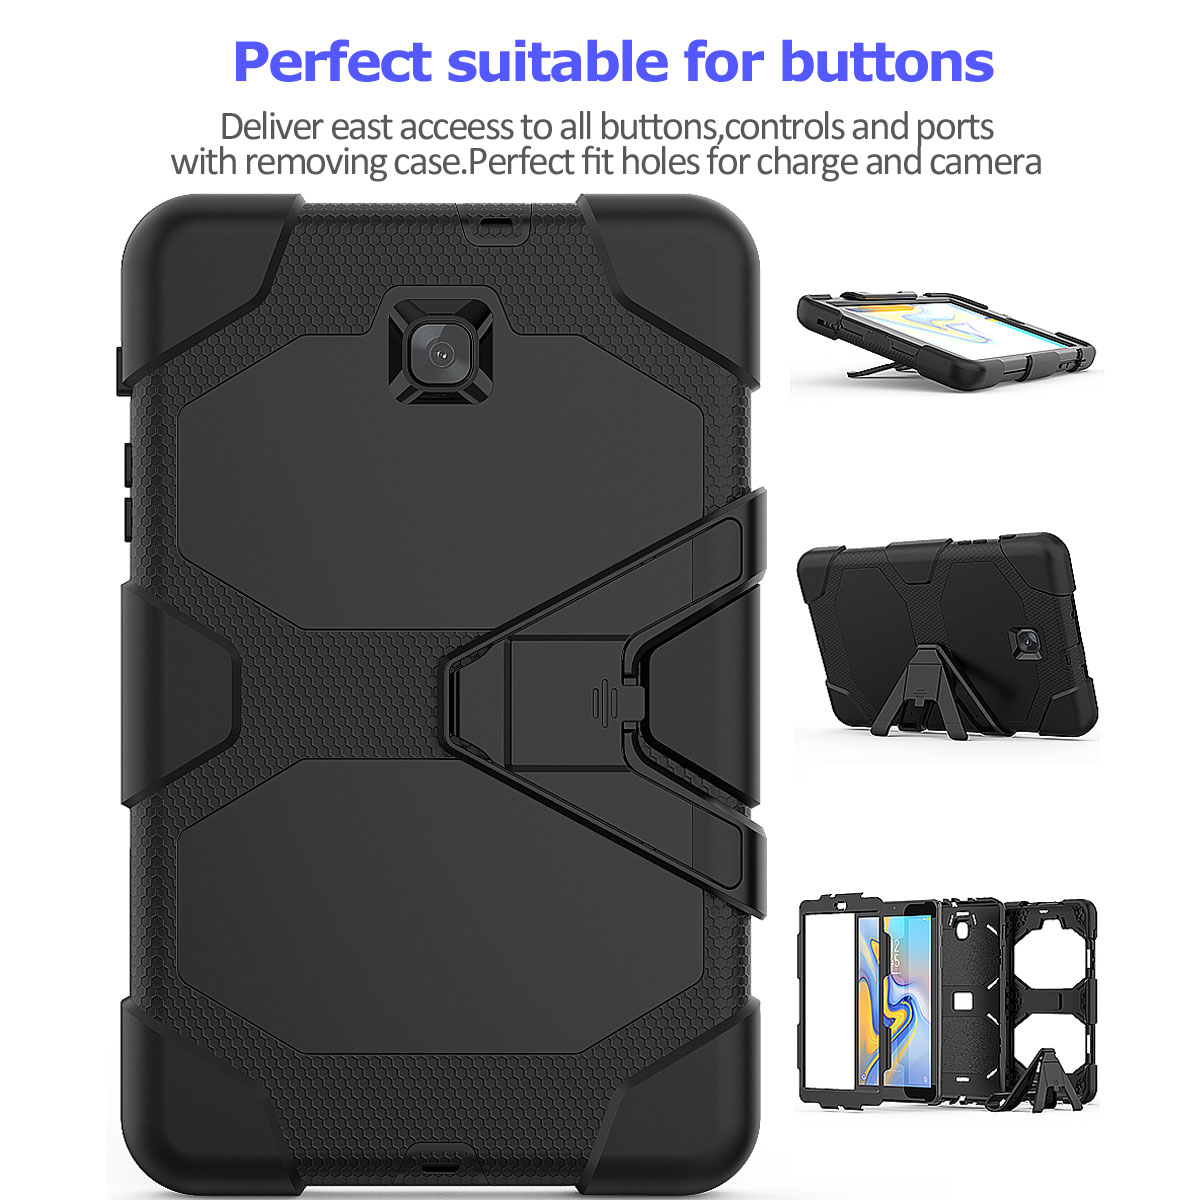 Rugged-Hard-Case-For-Samsung-Galaxy-Tab-A-8-0-2018-SM-T387-with-Screen-Protector thumbnail 60